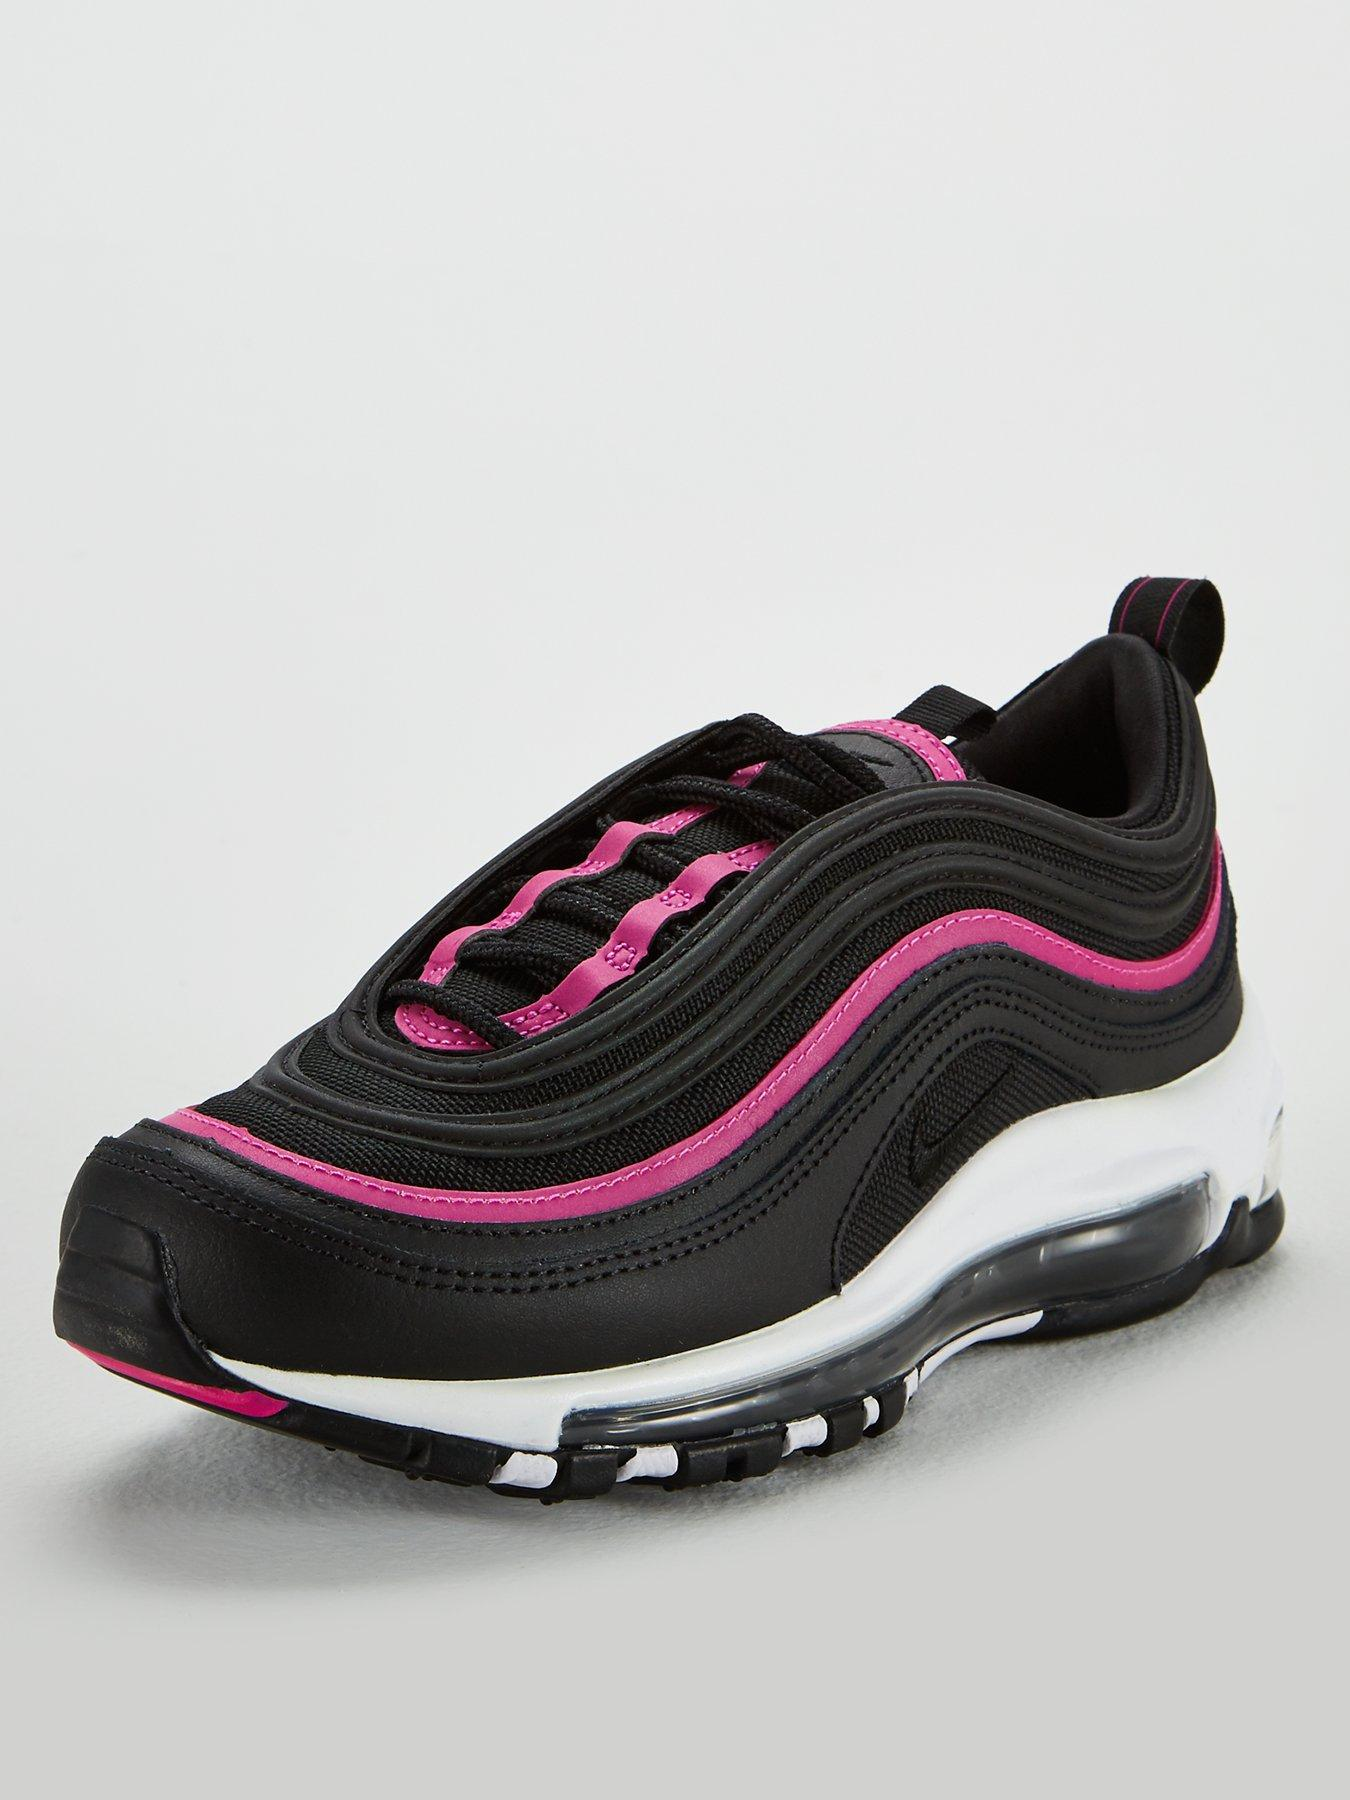 a3ac75ccc ... running shoes 3f1e3 835bf  canada nike air max 97 lux black pink 8516e  735f3